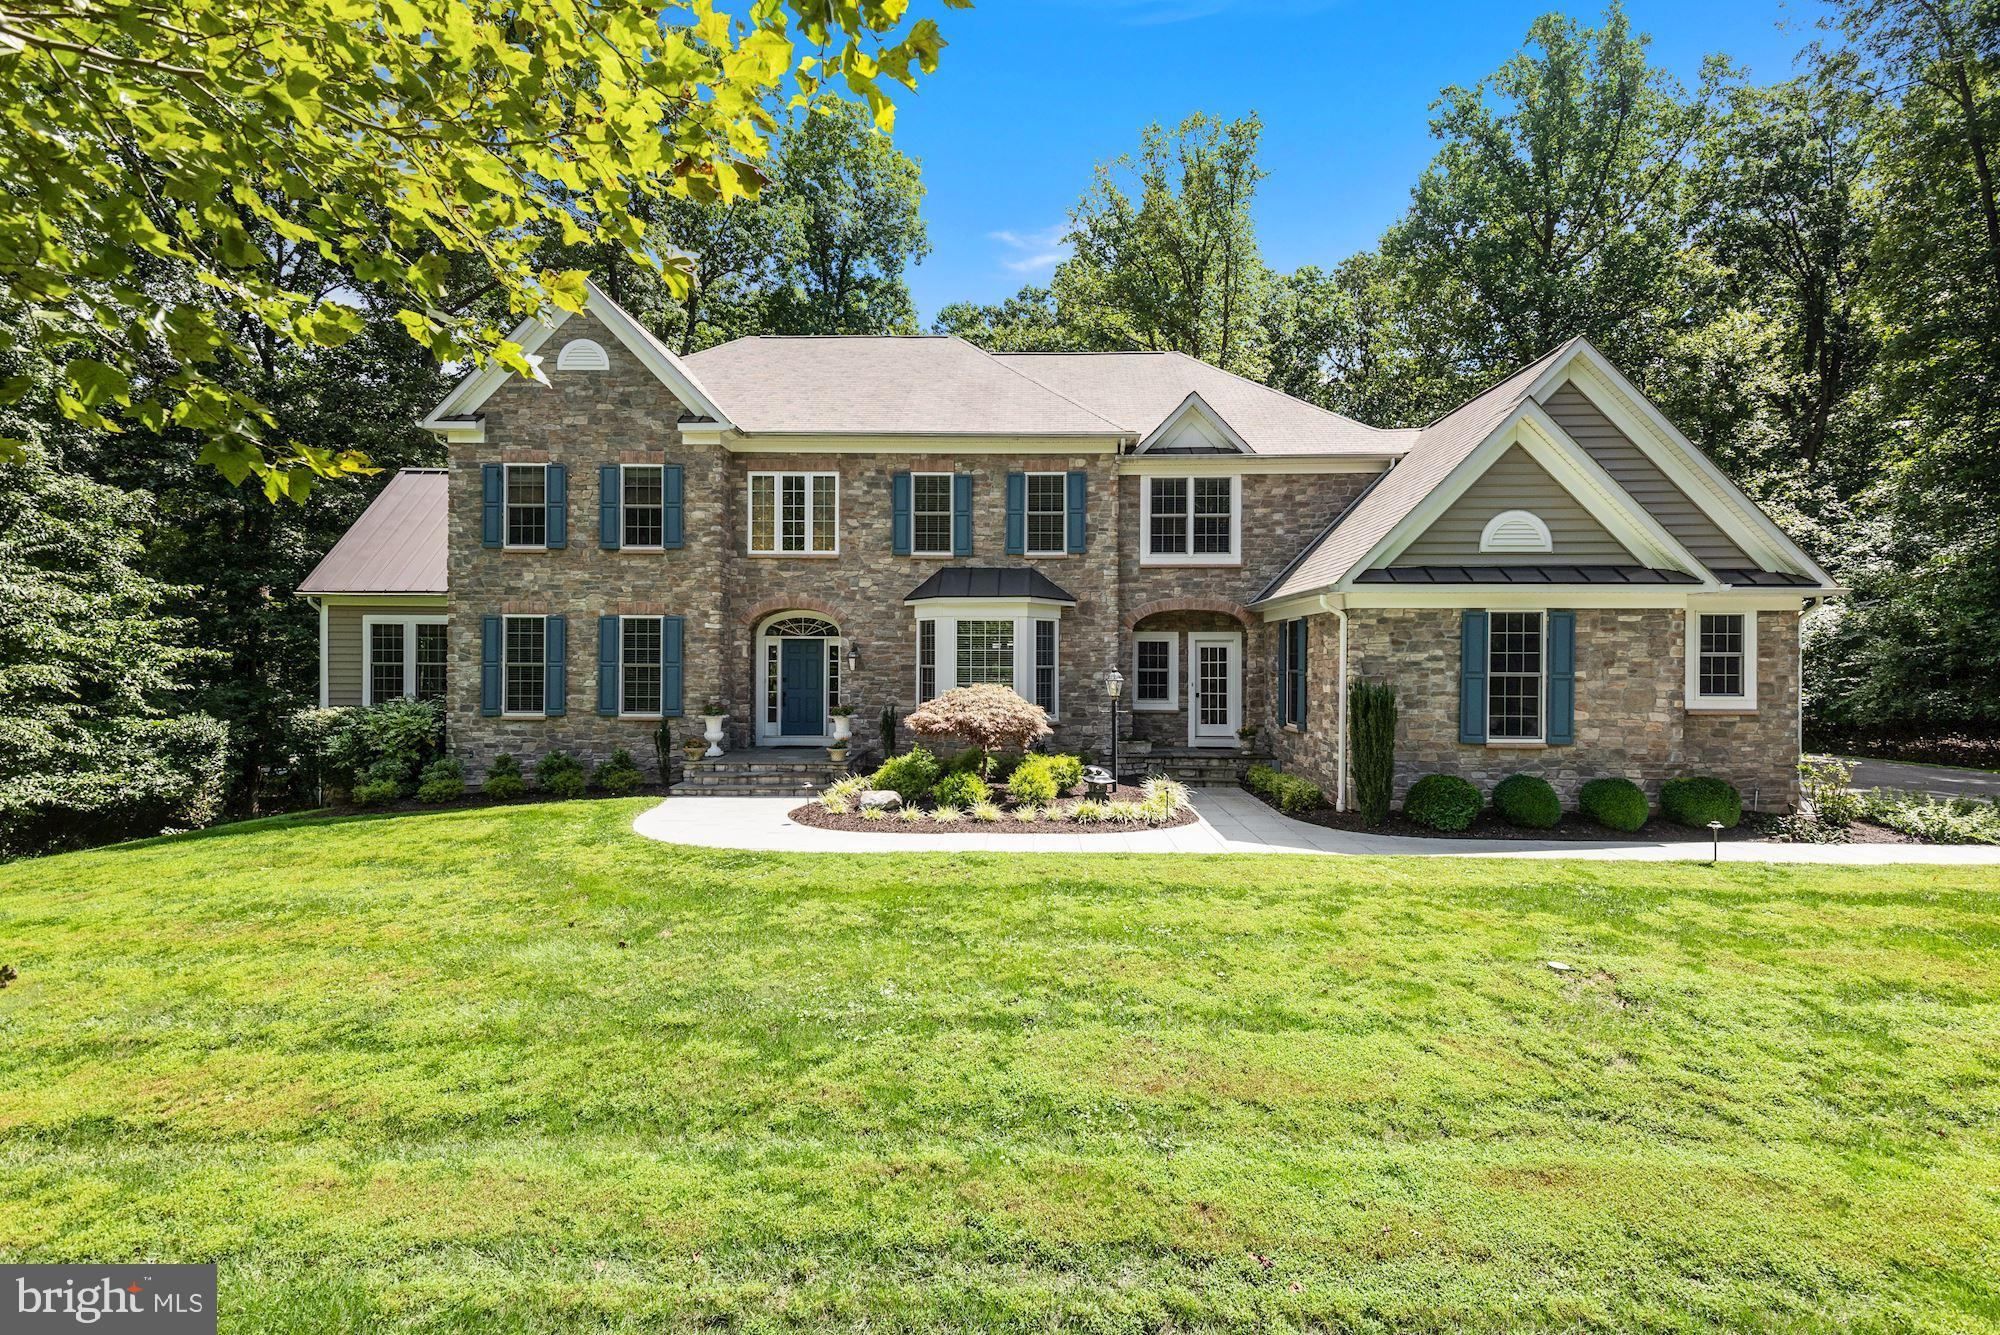 4285 Buckskin Wood Dr, Ellicott City, MD, 21042